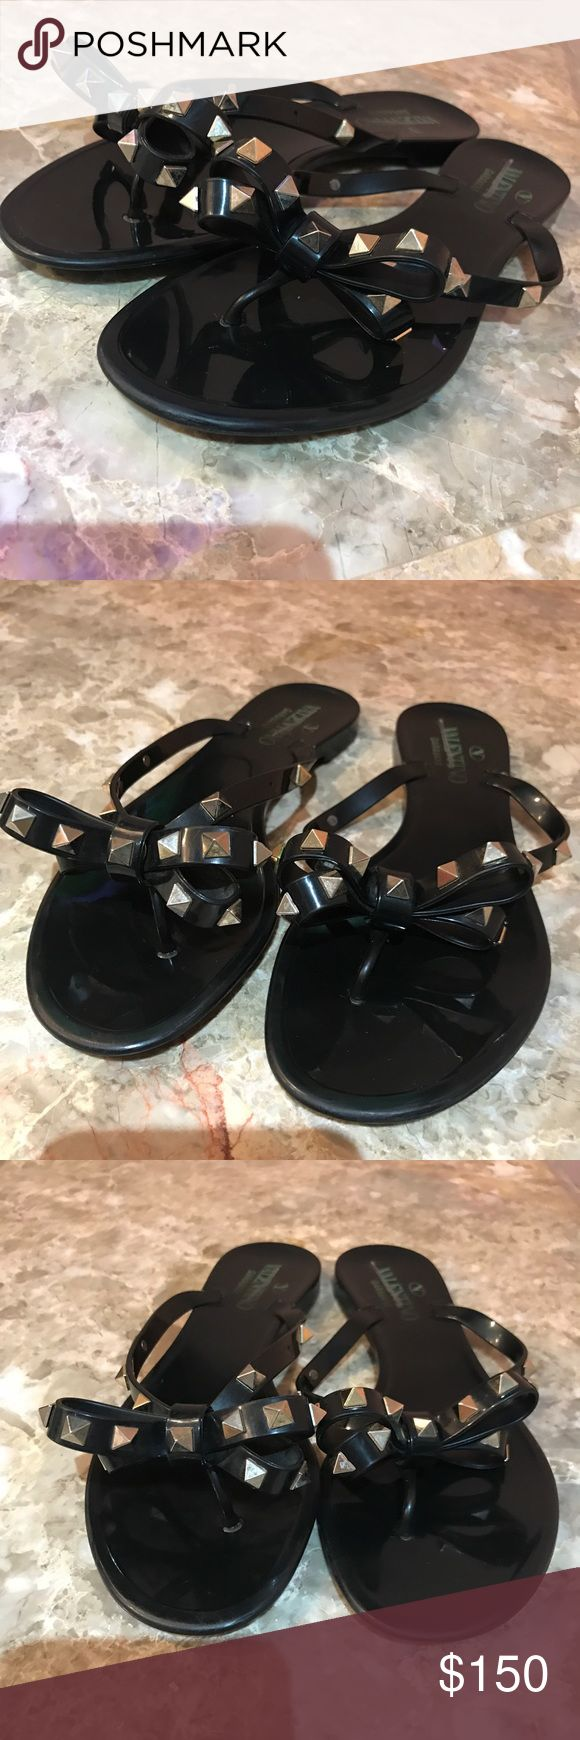 VALENTINO ROCKSTUD BOW PVC JELLY SANDALS SLIDES 37 Valentino Rockstud Bow Jelly Sandals. Size 37. Preowned in good condition. Two studs are missing please review photos they are both on the right foot. One is on the inner thong strap close to the sole (very unnoticeable) the other is hidden in the Bow (also unnoticeable) but judge for yourself. No box or dust bag 100% authentic. For sale only no trades thanks and Happy Poshing 💗 Valentino Shoes Sandals